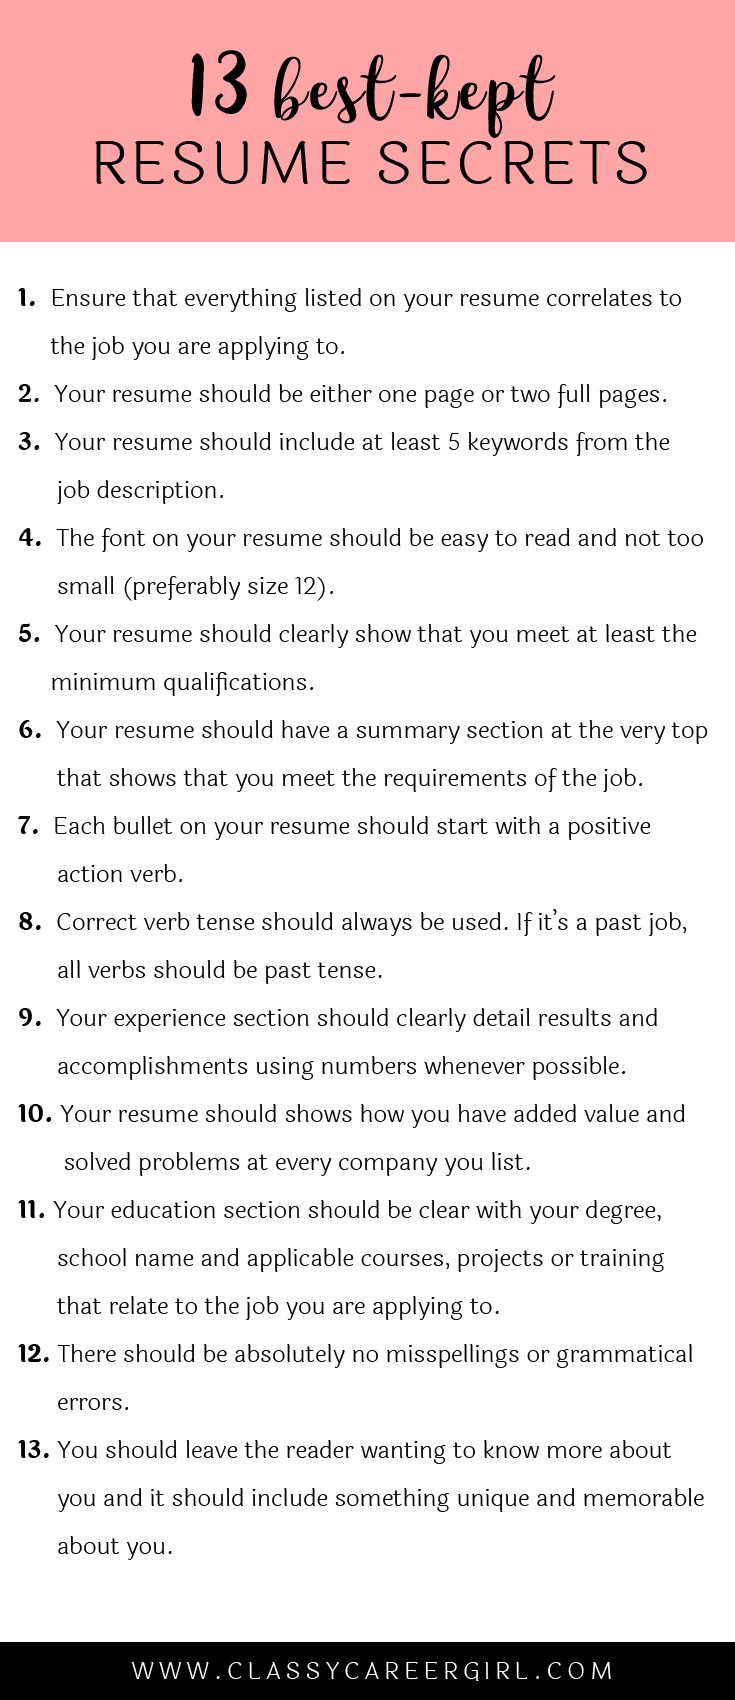 Opposenewapstandardsus  Pretty  Ideas About Resume On Pinterest  Cv Format Resume Cv And  With Hot Some Hiring Managers Will Toss Your Resume Out If You Dont Know These  With Amazing Free Unique Resume Templates Also Resume Copy In Addition Inside Sales Representative Resume And How To Make A Dance Resume As Well As How To Make A Reference Page For A Resume Additionally Marketing Consultant Resume From Pinterestcom With Opposenewapstandardsus  Hot  Ideas About Resume On Pinterest  Cv Format Resume Cv And  With Amazing Some Hiring Managers Will Toss Your Resume Out If You Dont Know These  And Pretty Free Unique Resume Templates Also Resume Copy In Addition Inside Sales Representative Resume From Pinterestcom